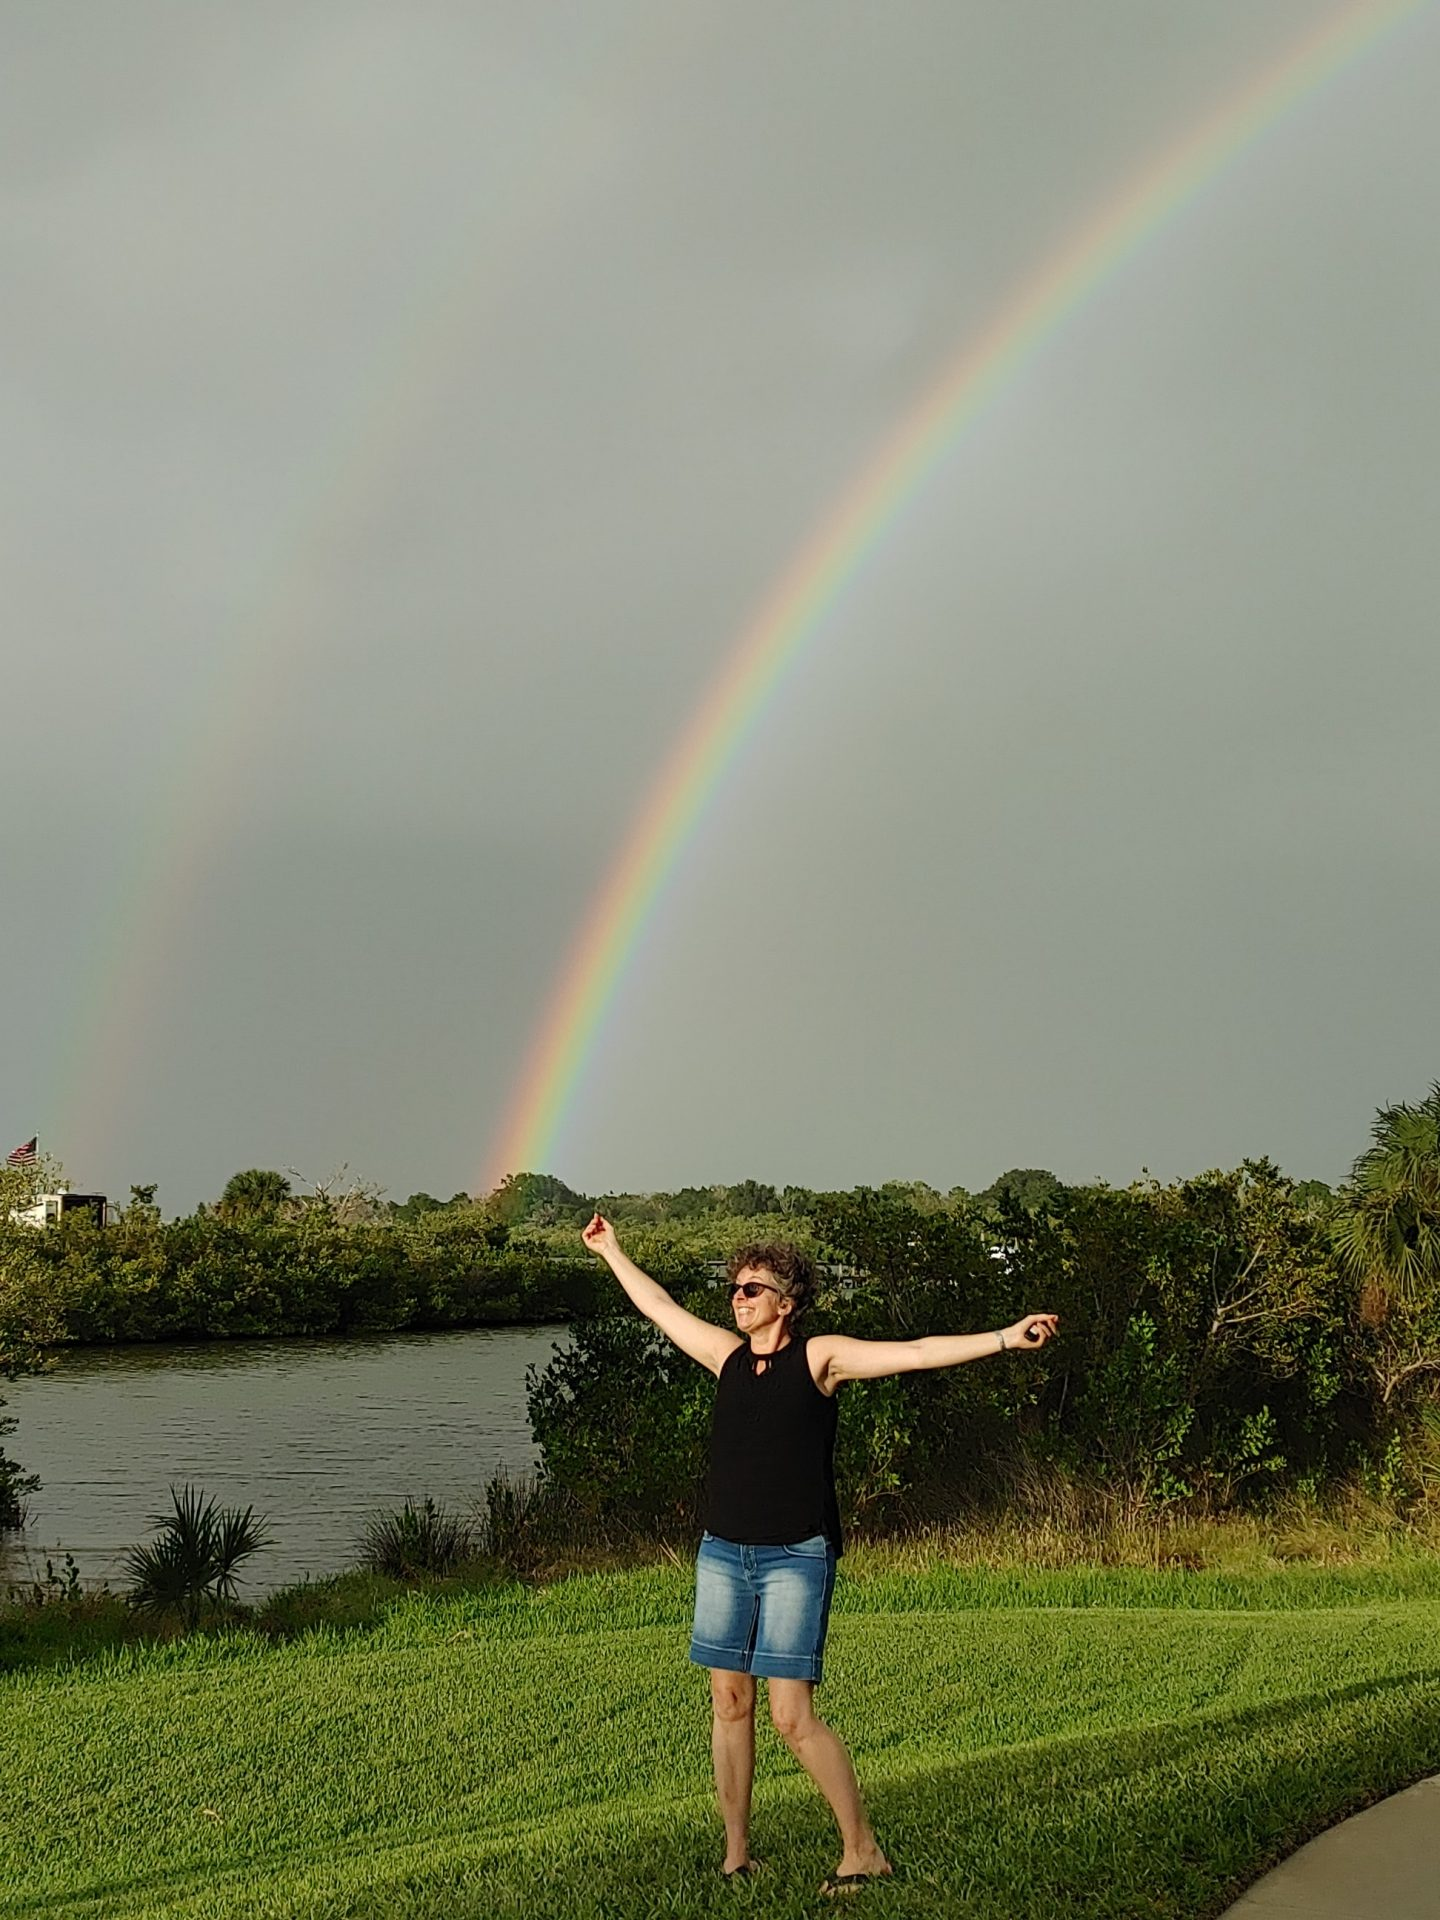 As we were leaving her neighborhood for the last time, mom sent a full double rainbow that stretched completely over the dolphin pier where we sought solace every day over the past few weeks. I don't believe in coincidences. I believe in God and everlasting life.